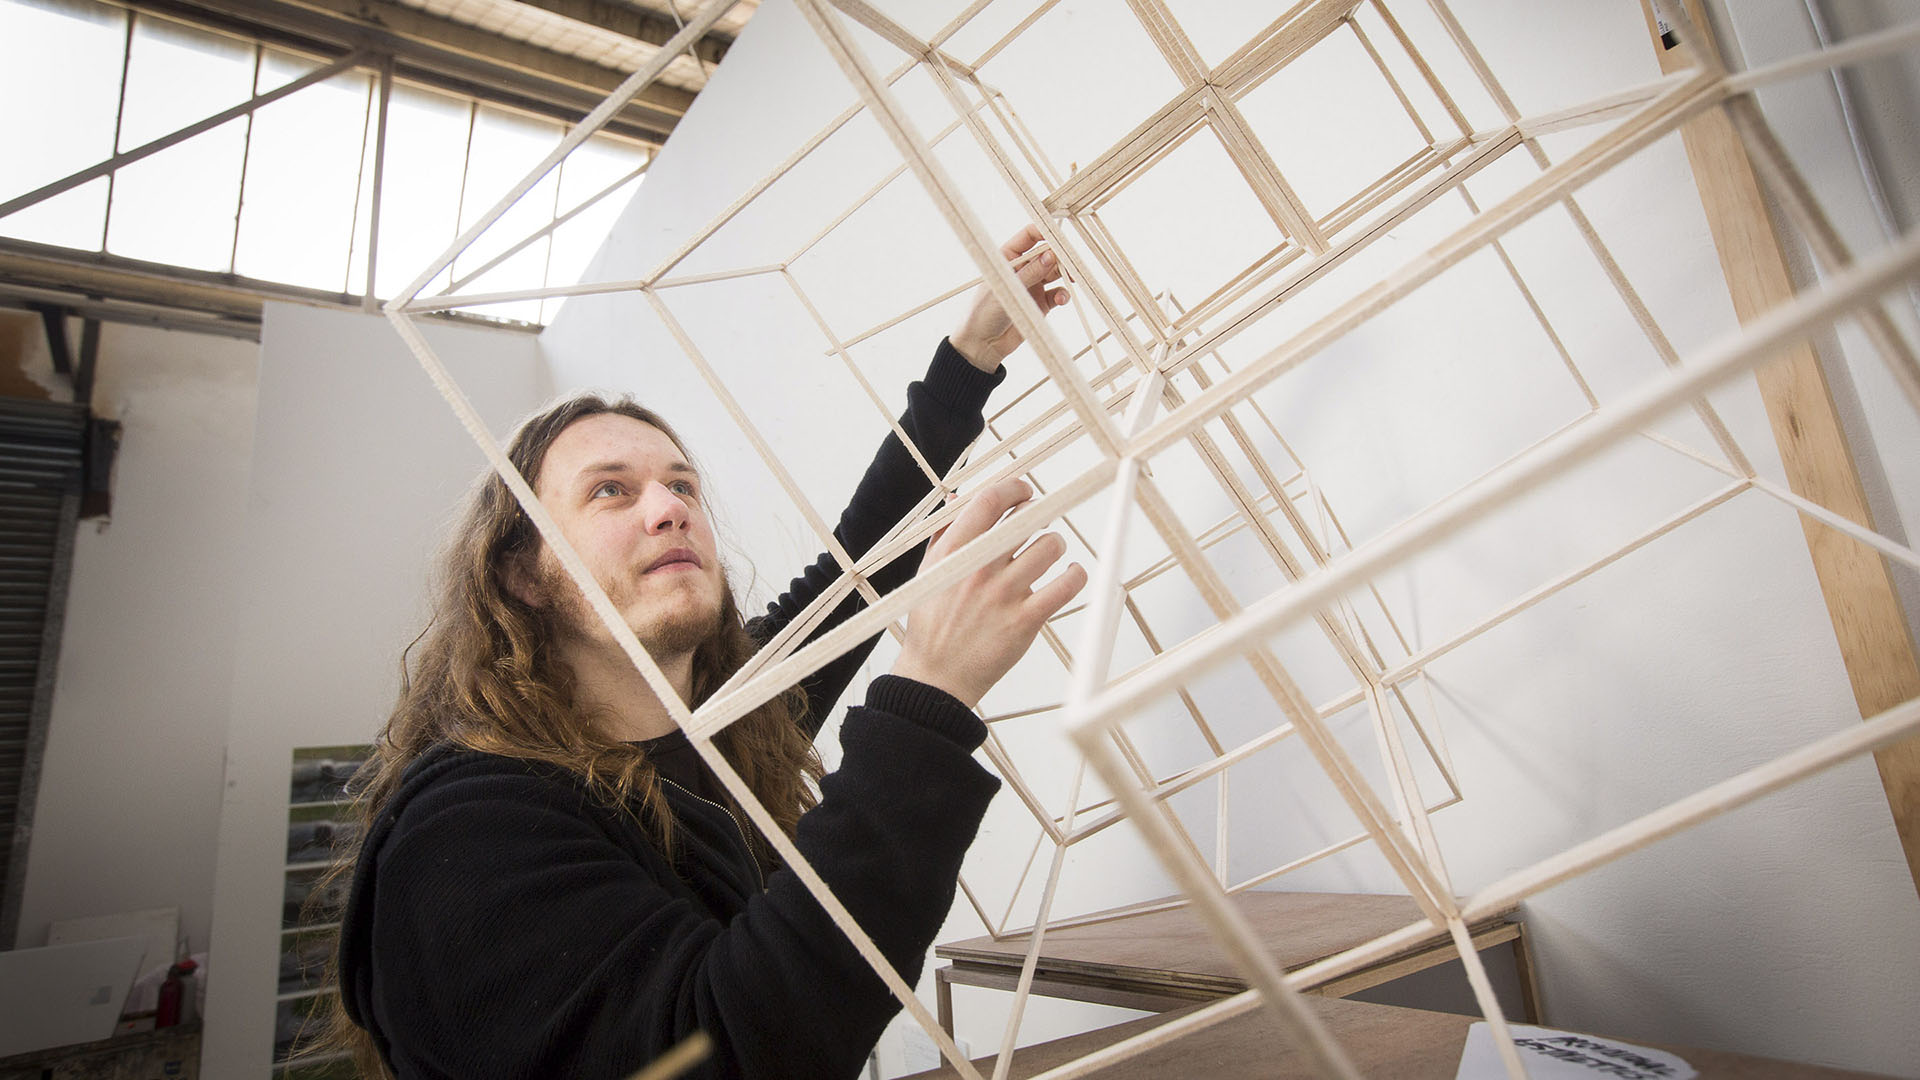 A design student with a 3D model made from dowel